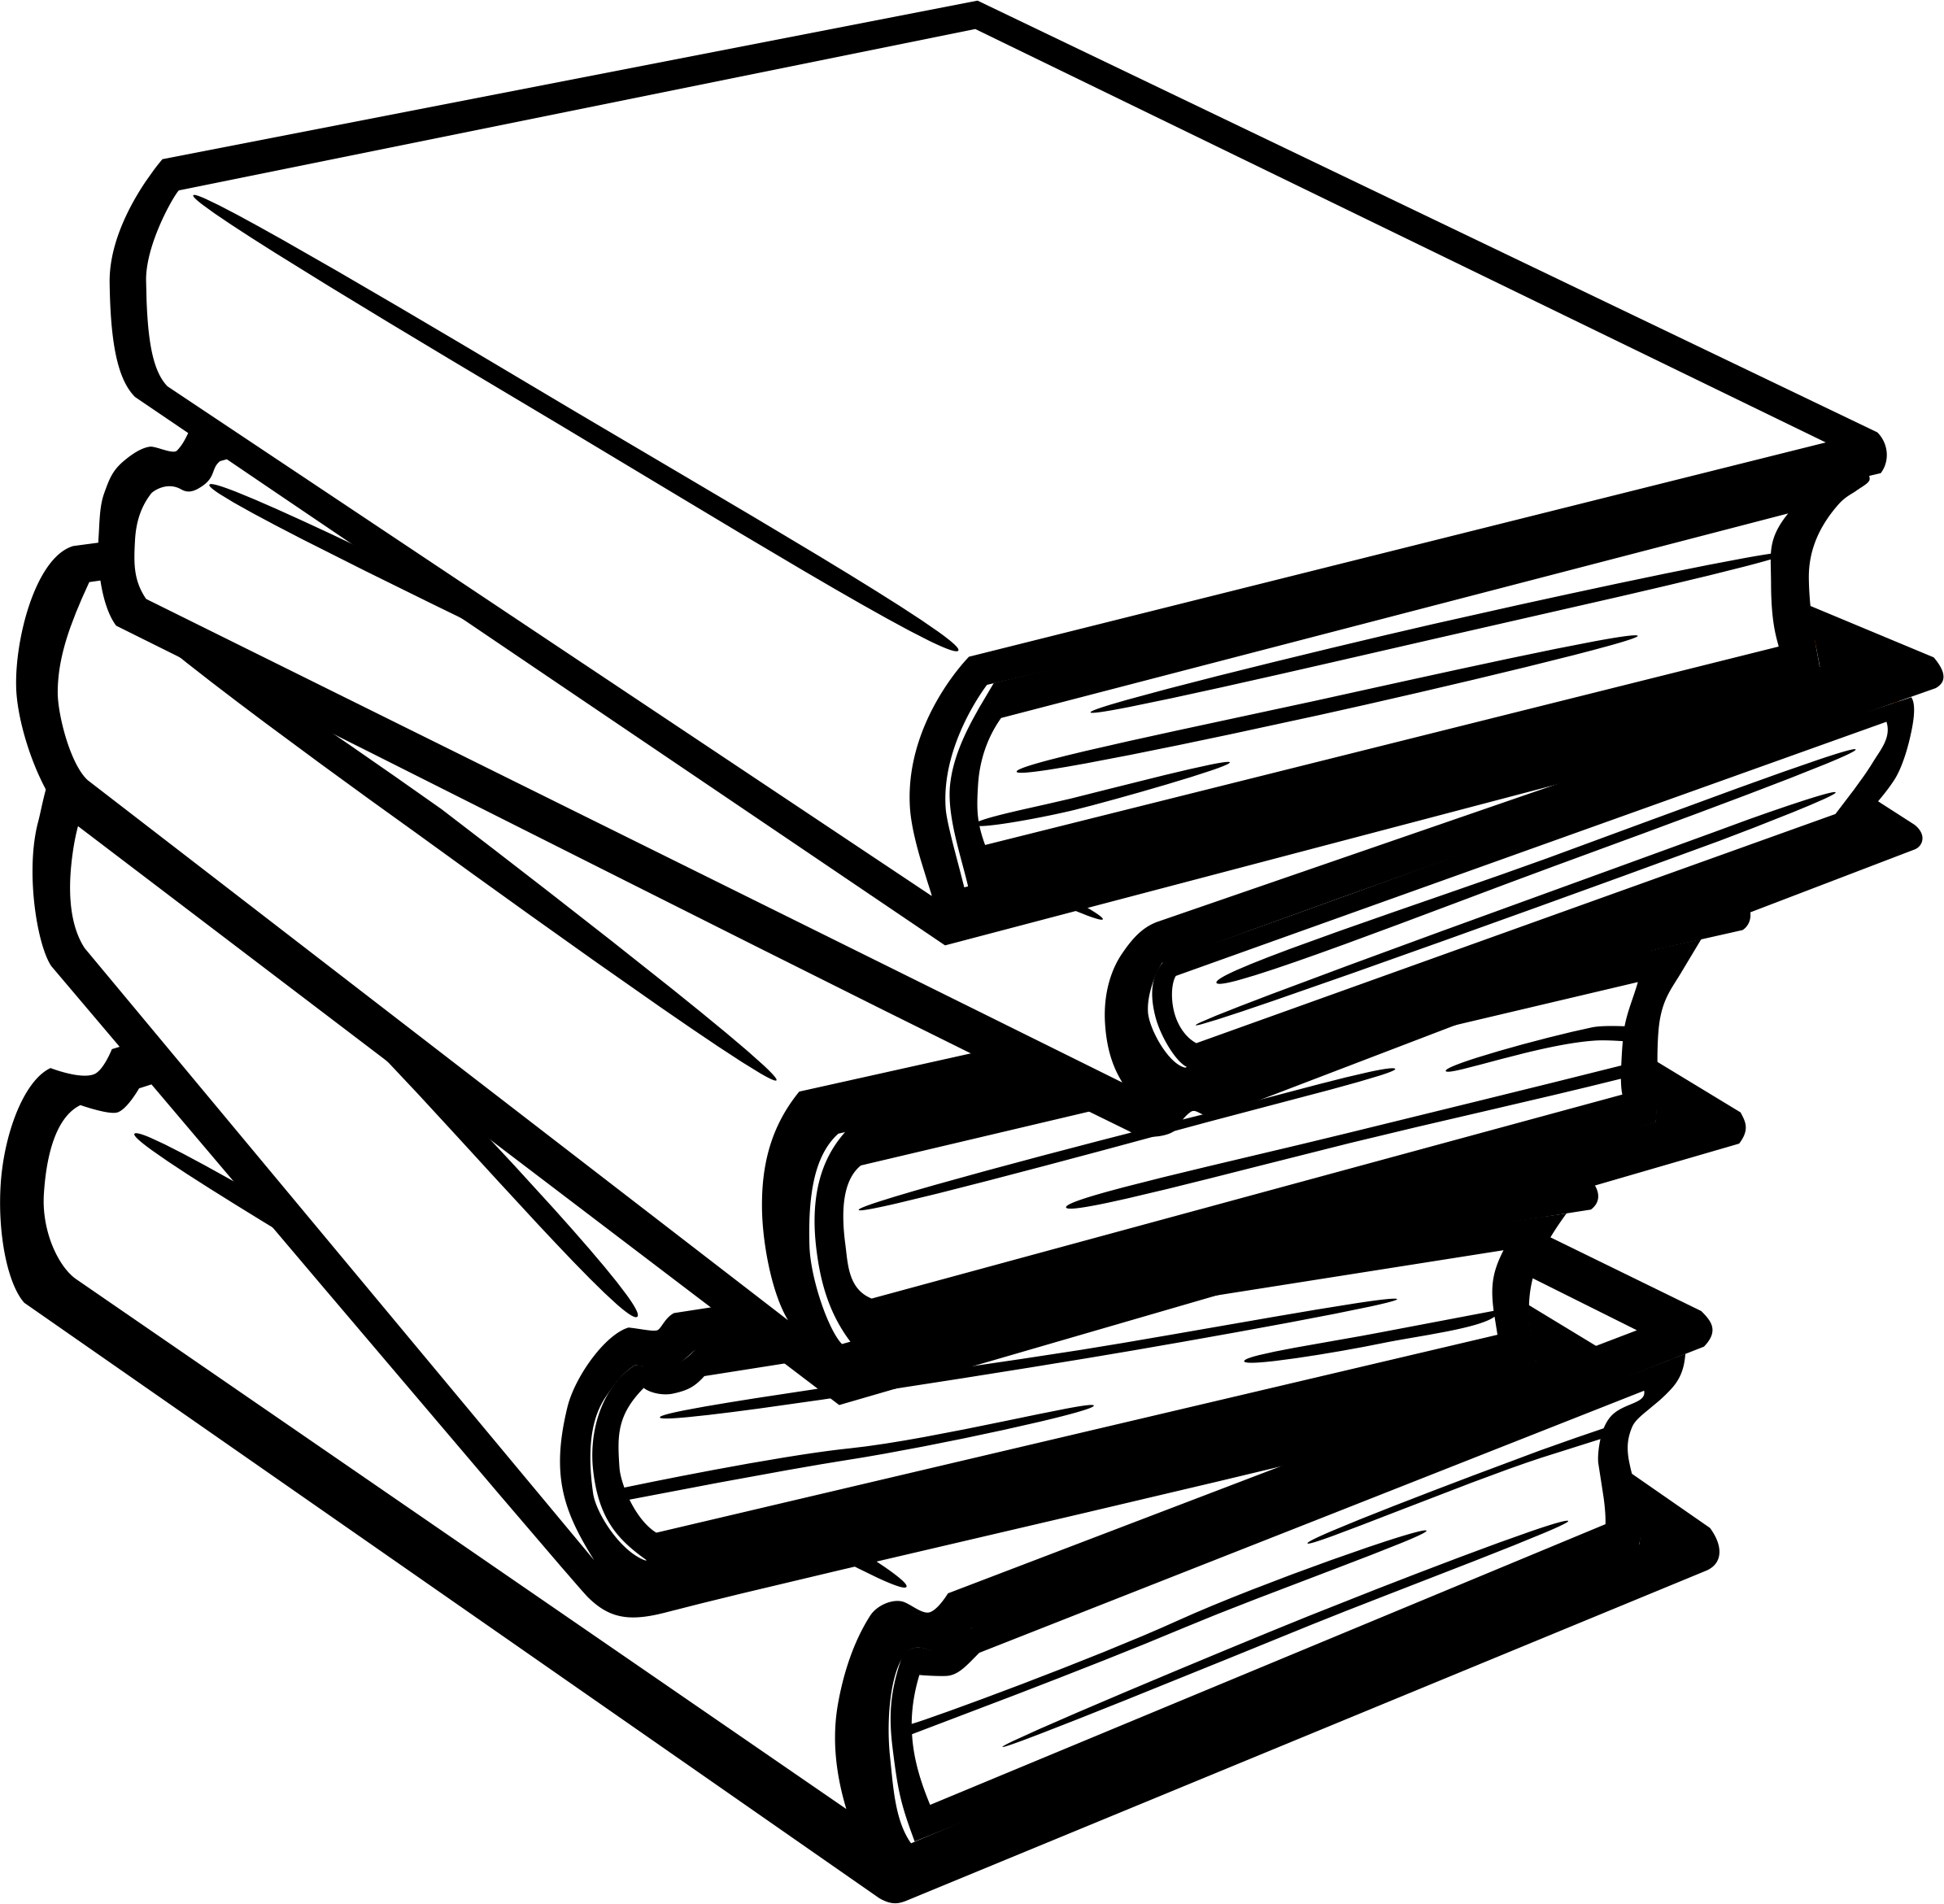 Books - Lineart - No Shading by amcolley